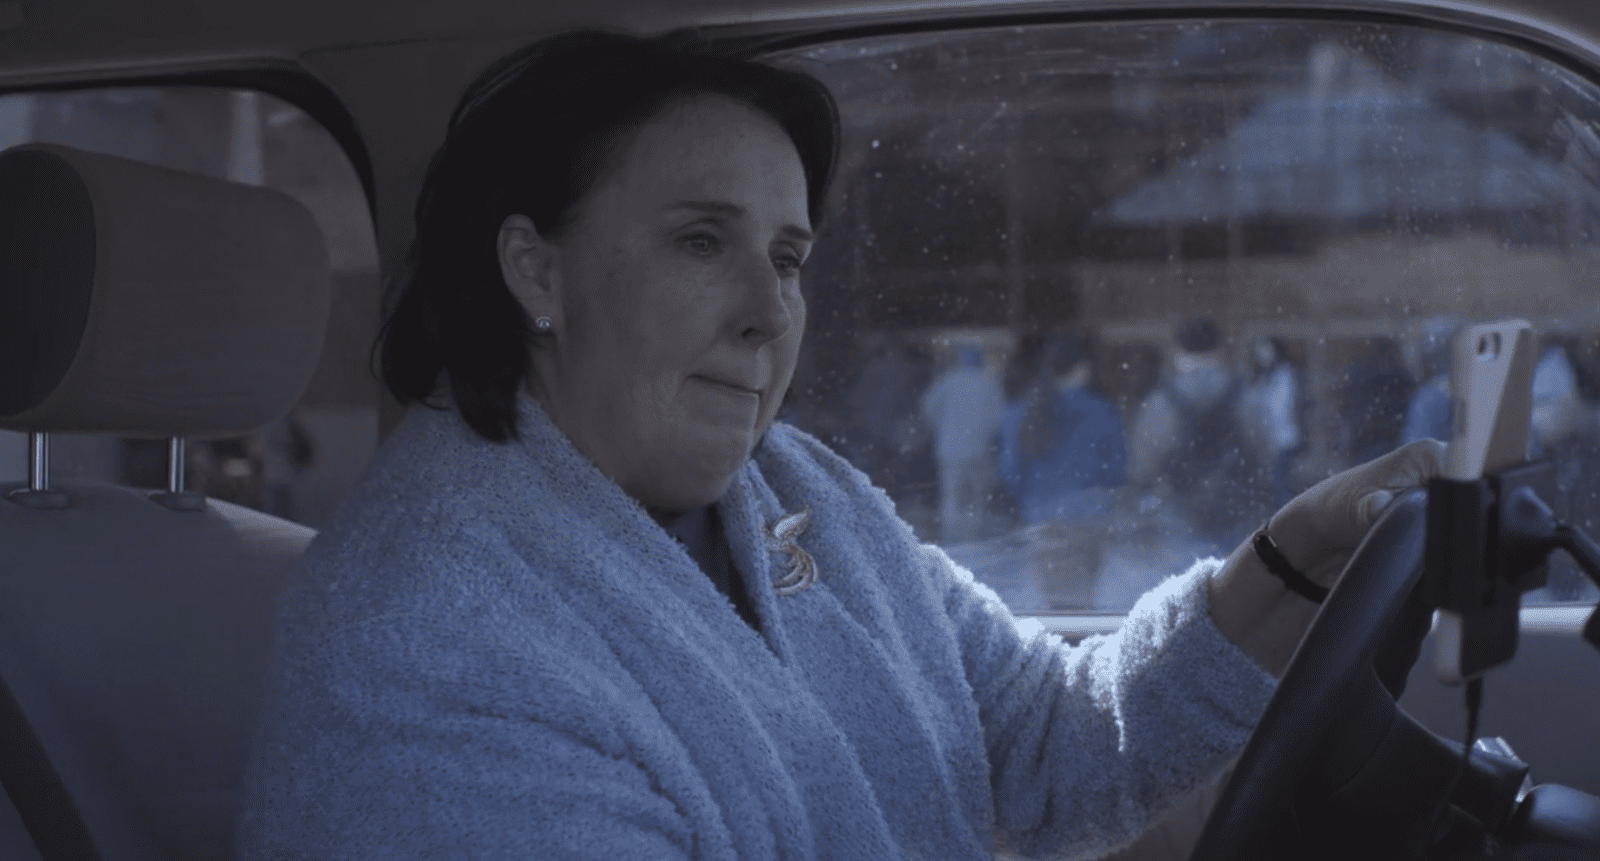 Phyllis Smith as Betty Broderick-Allen (BBA) in The OA